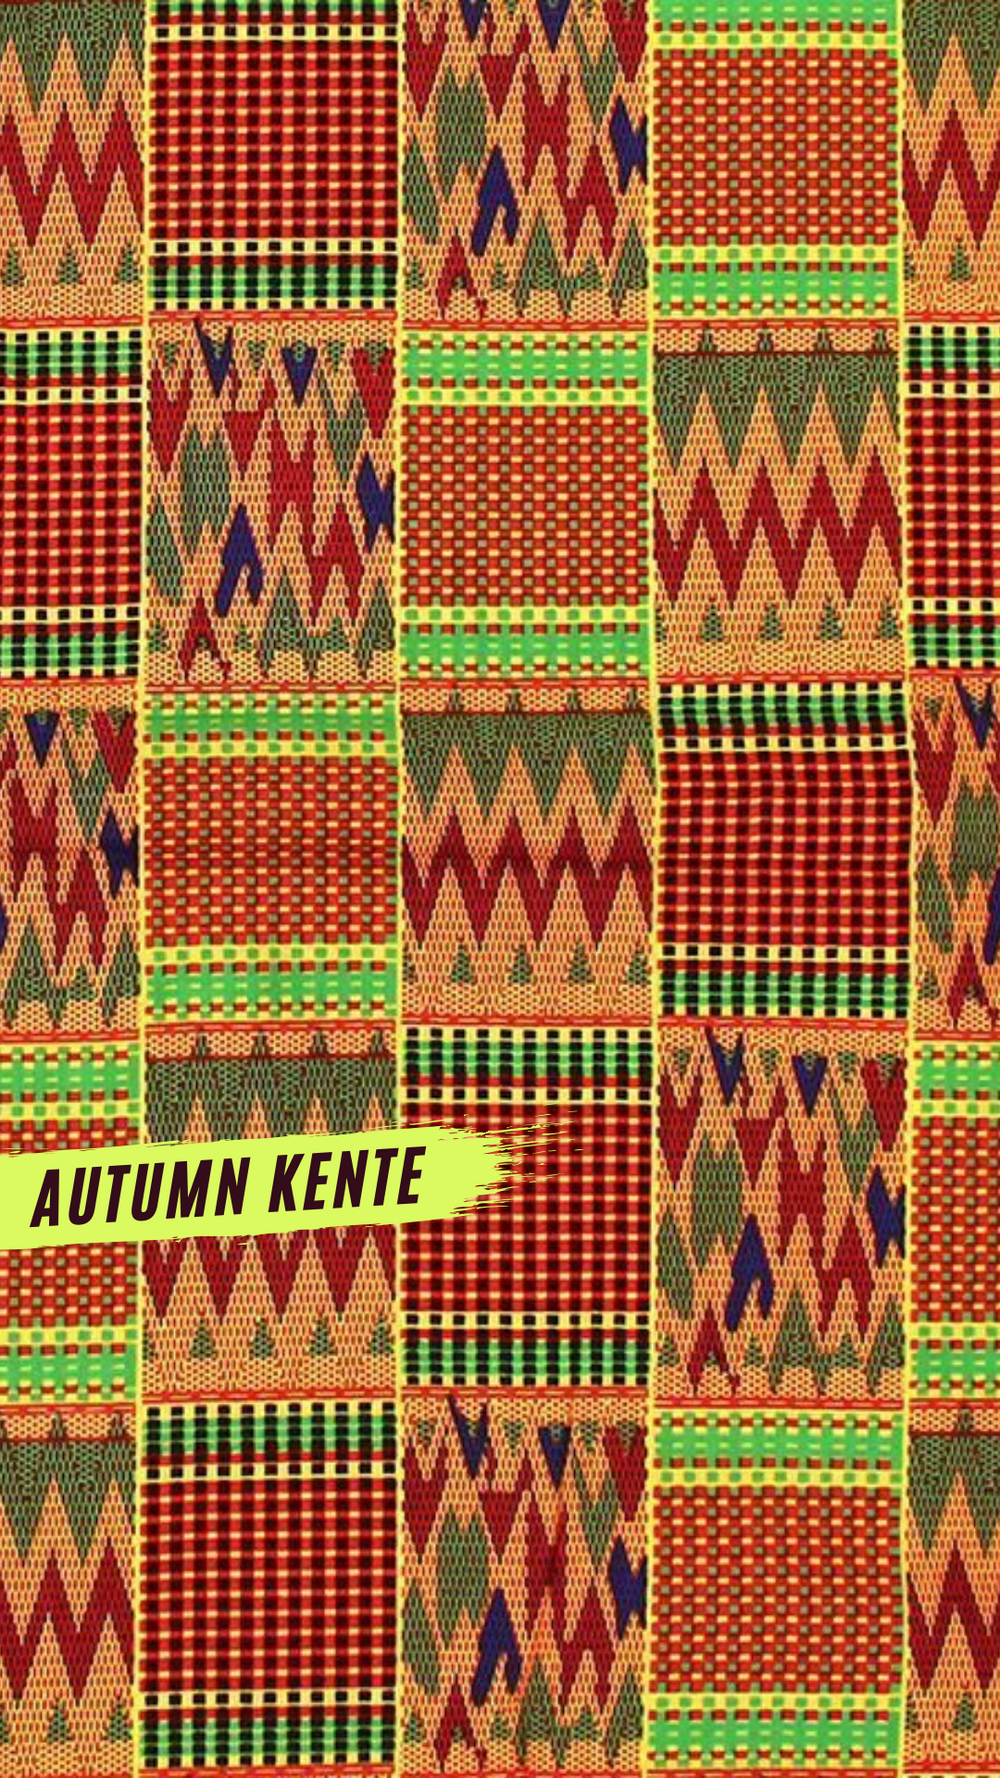 Autumn Kente African Print Headwrap